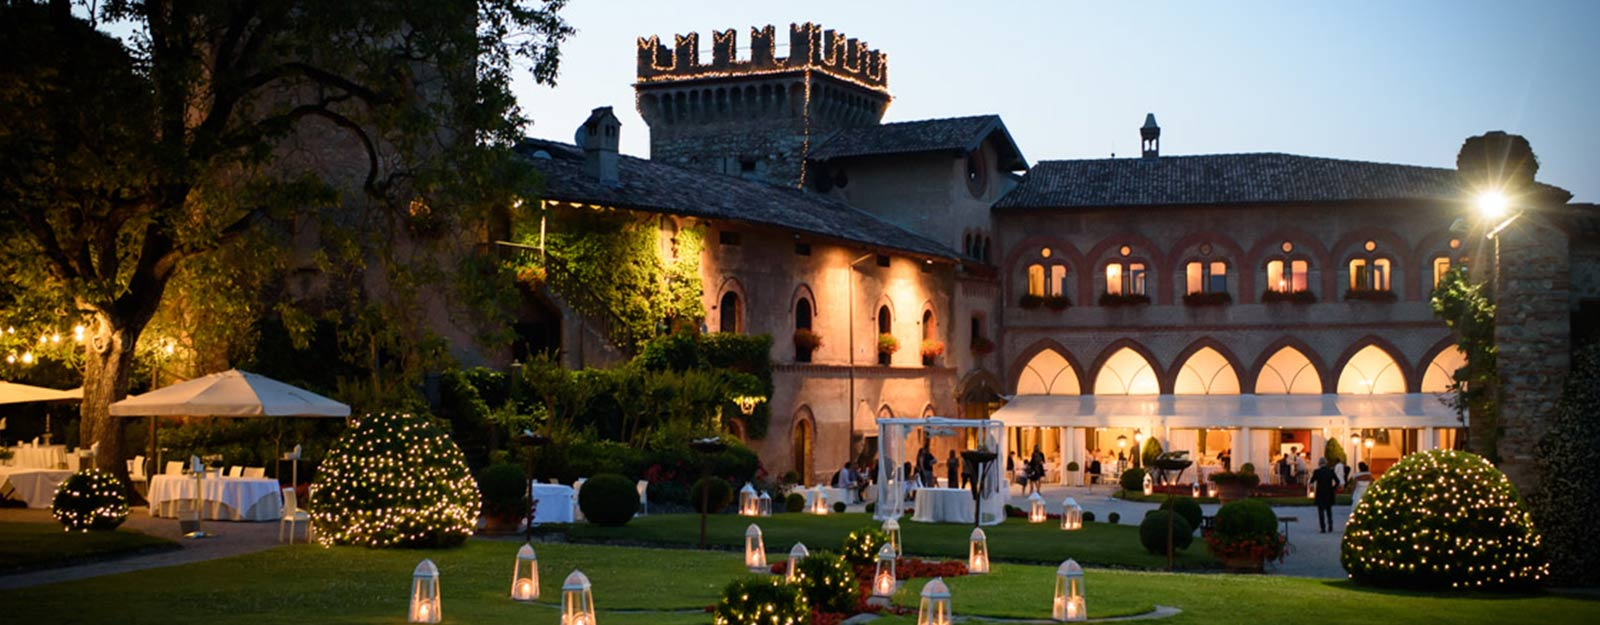 castello marne brianza weddings 1